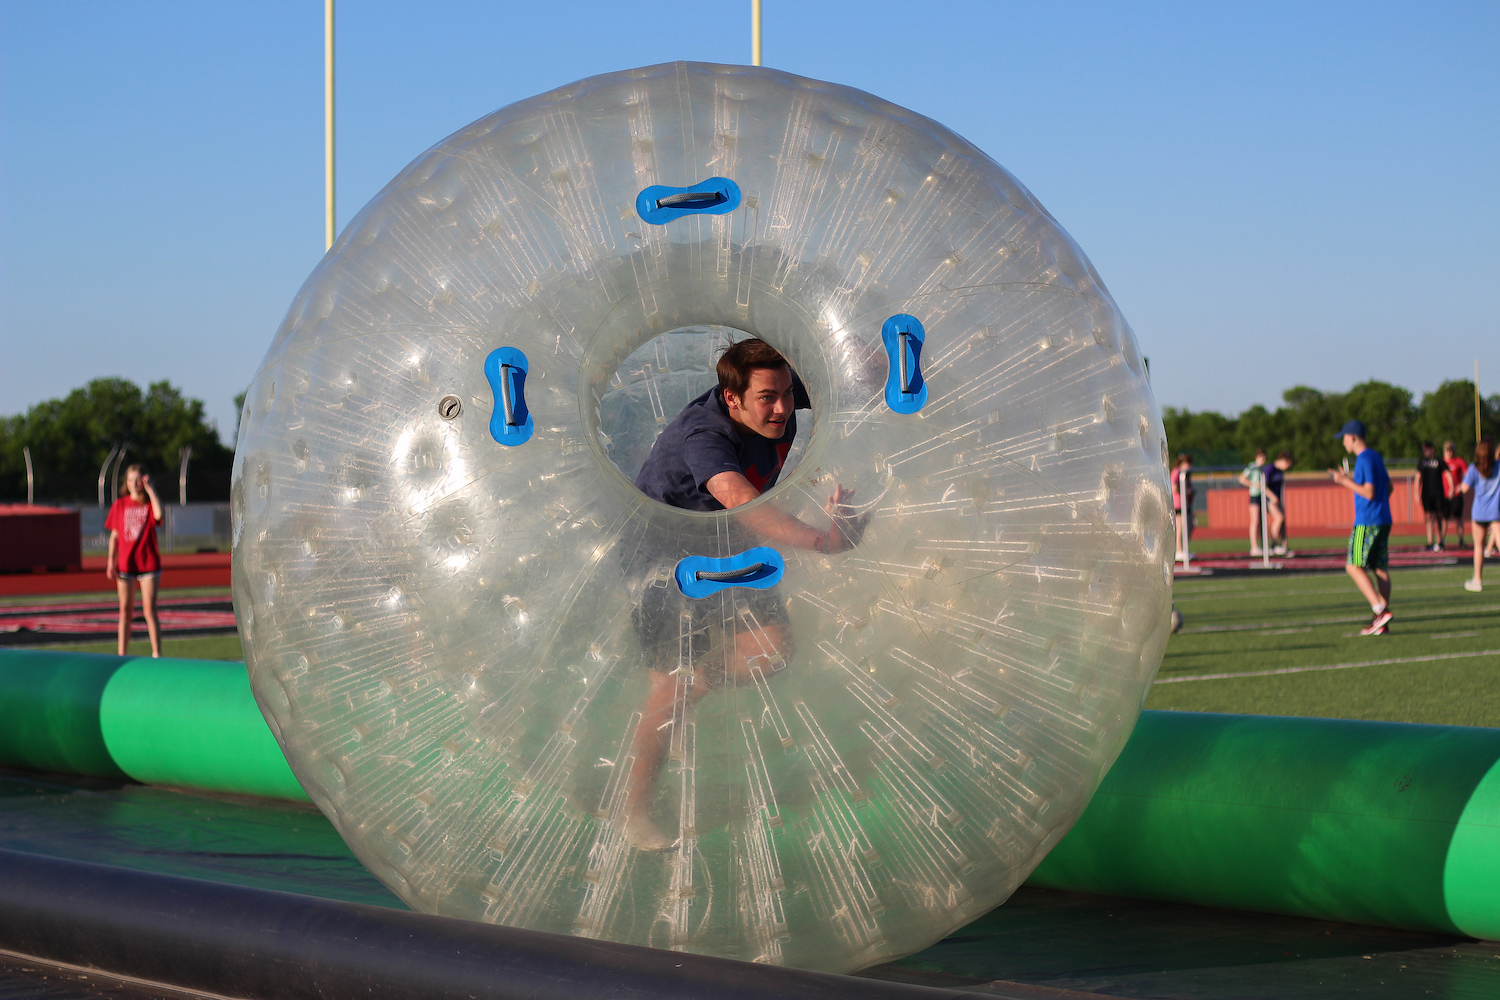 Junior+Derek+Fisher+participates+in+the+hamster-ball+activity+before+students+start+to+line+up+for+the+survivors%27+lap+to+begin